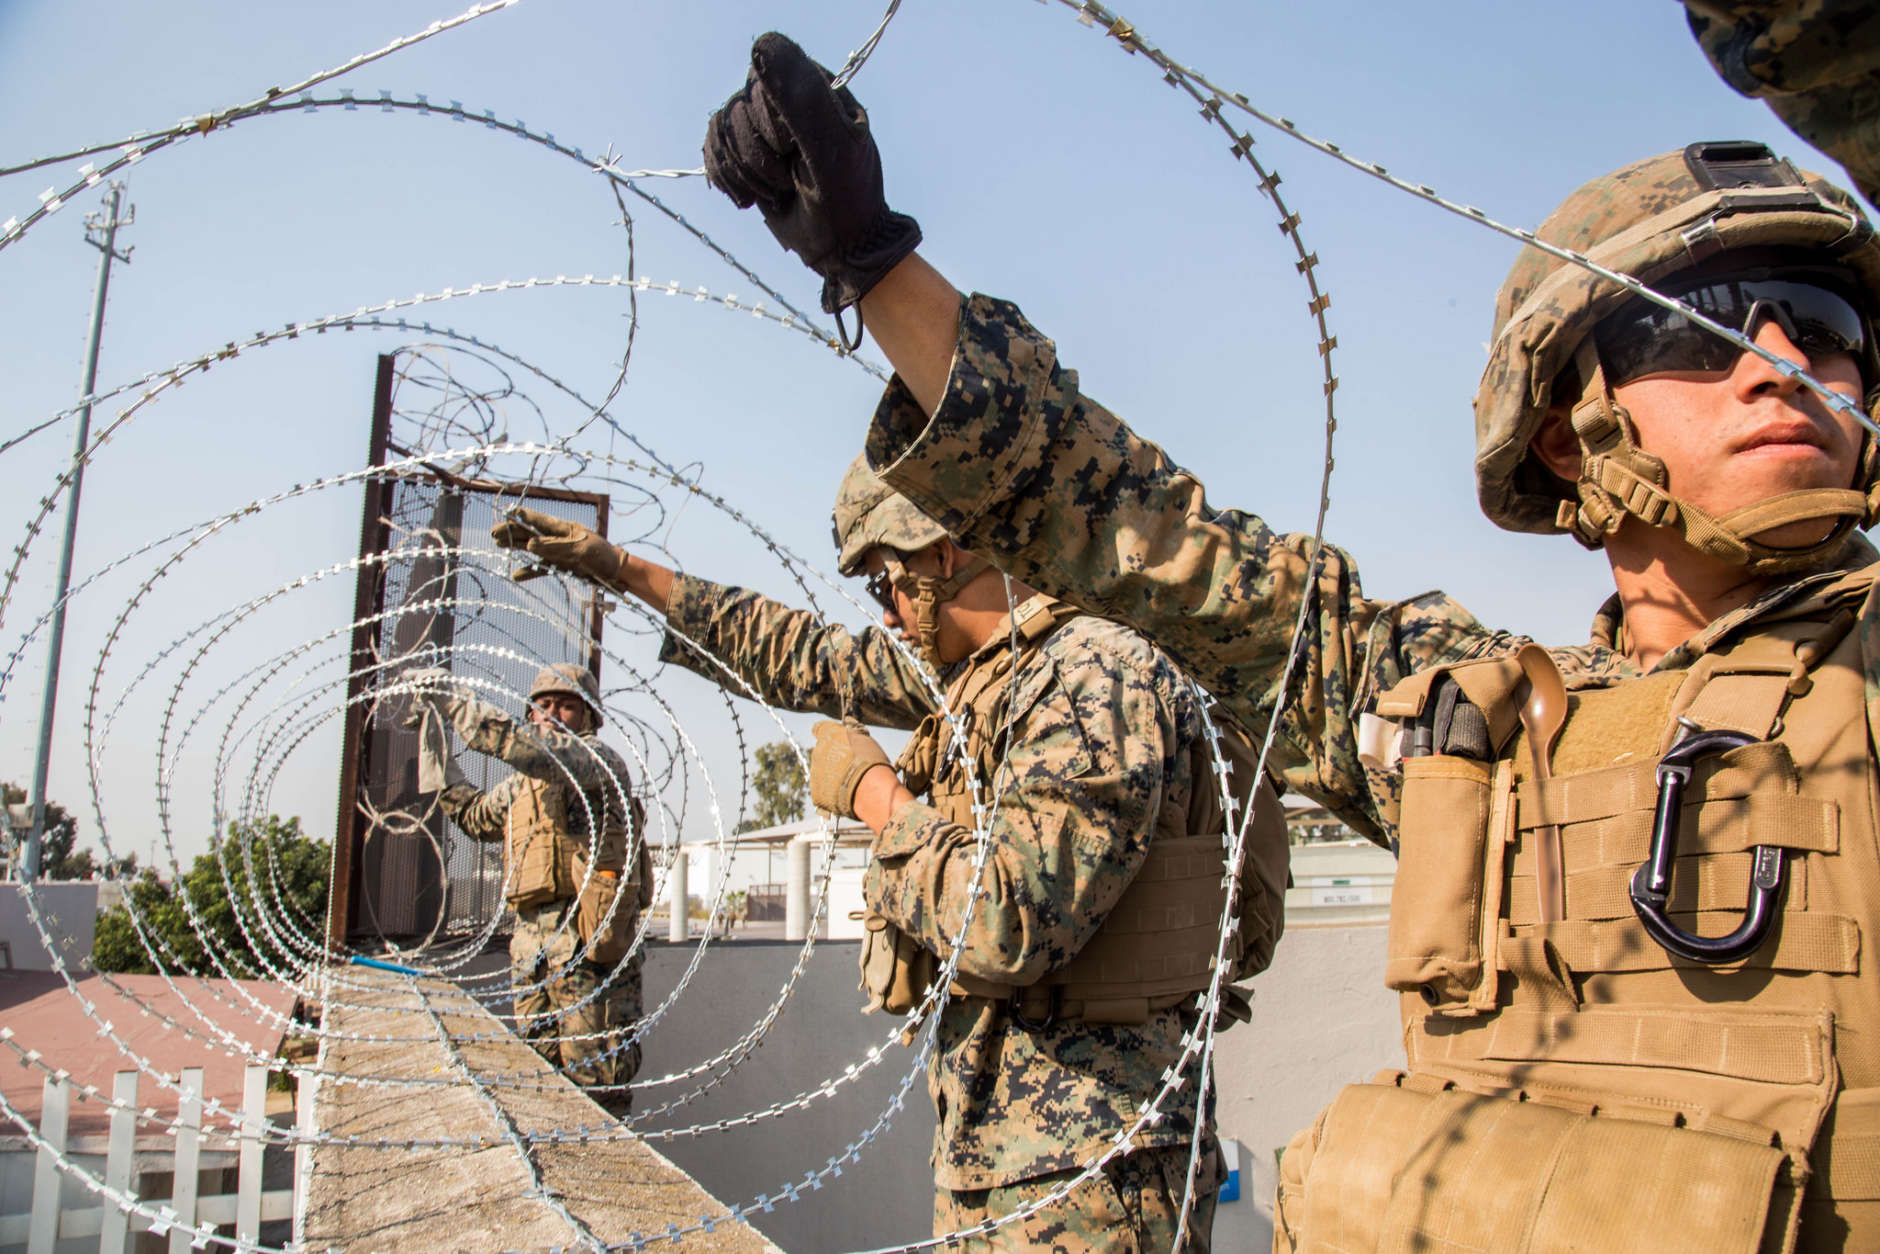 Navy Surgeon Performs Emergency Appendectomy Aboard Ship Federal Wiring Money Us Marines Place Concertina Wire At The Otay Mesa Port Of Entry In California On Nov 11 Northern Command Is Providing Military Support To